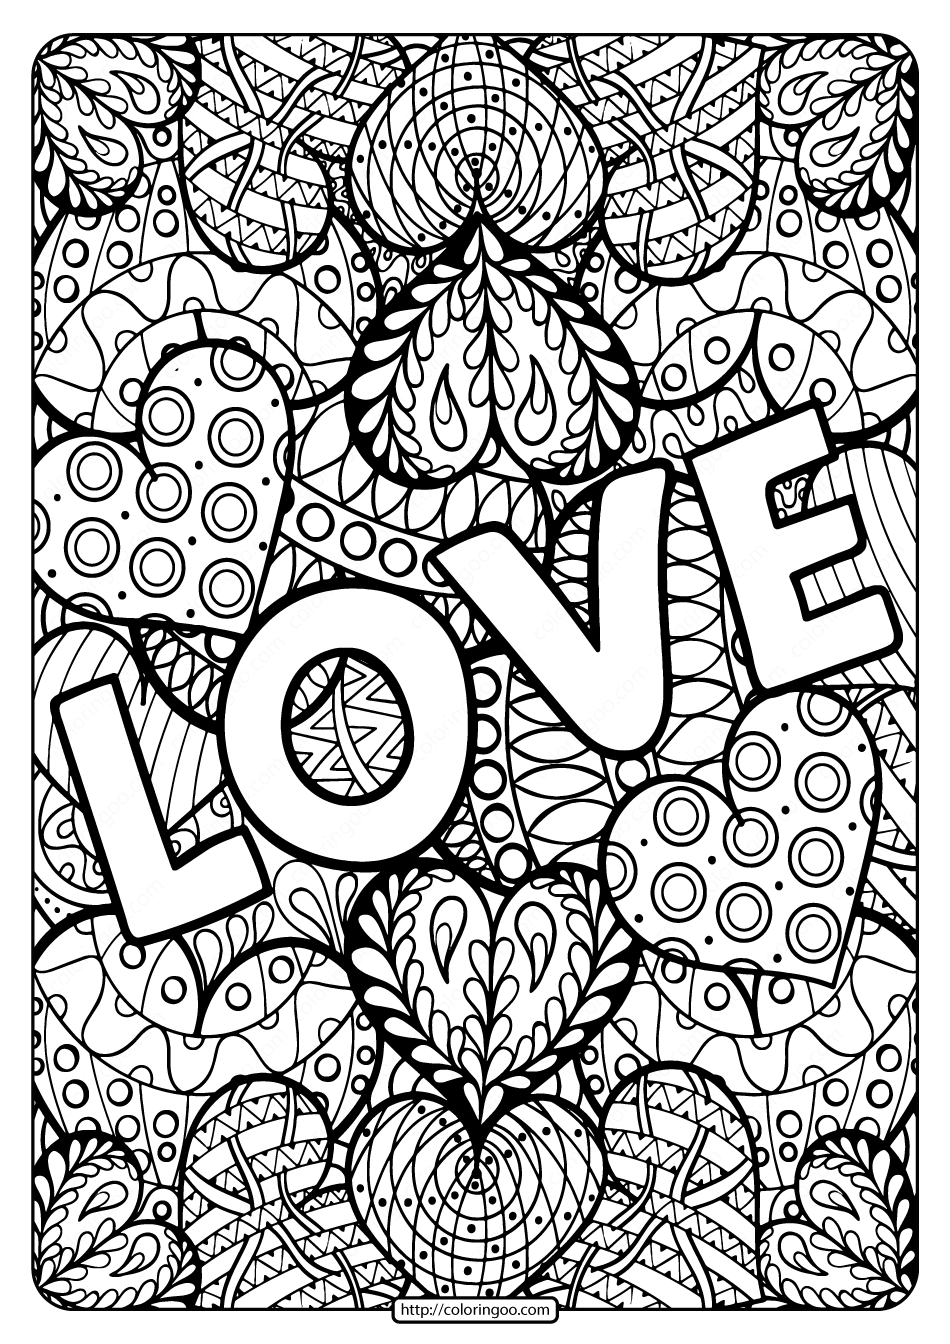 coloring book printable zen coloring pages for kids at getcoloringscom free printable coloring book